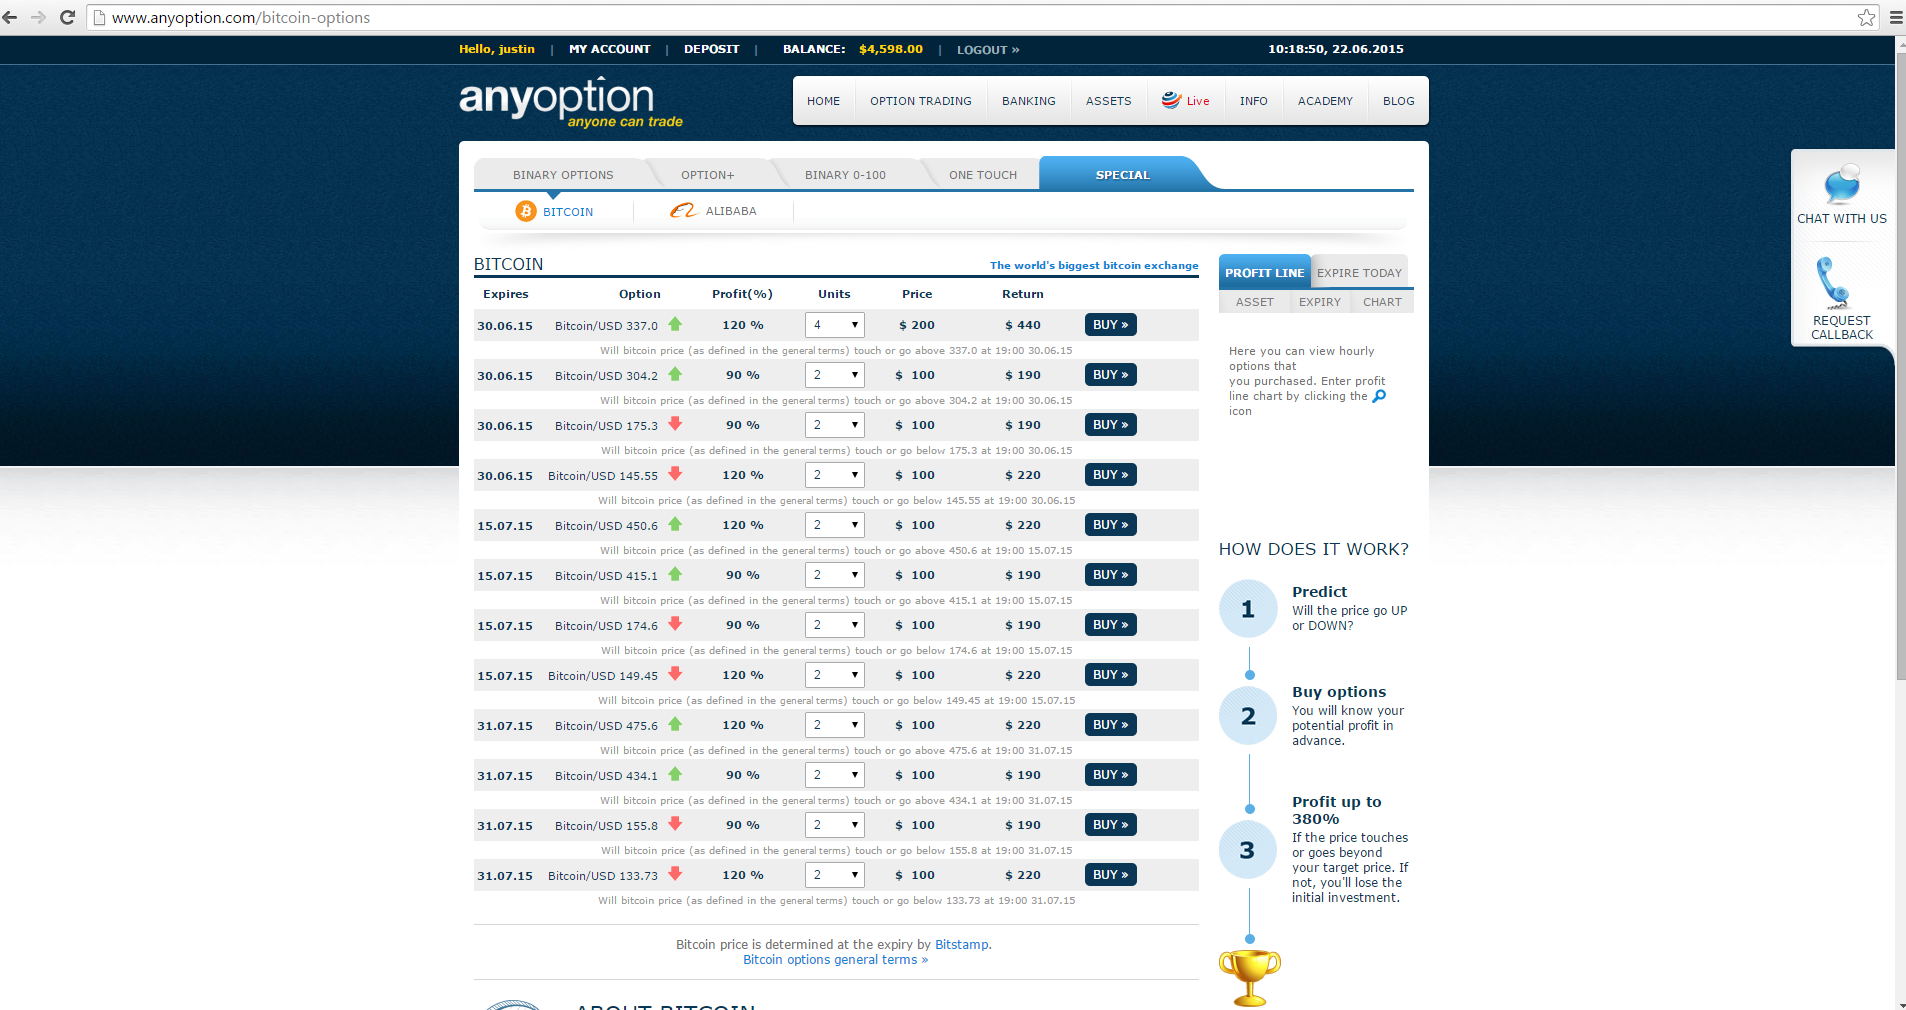 Top rated binary options brokers 2015 digital options